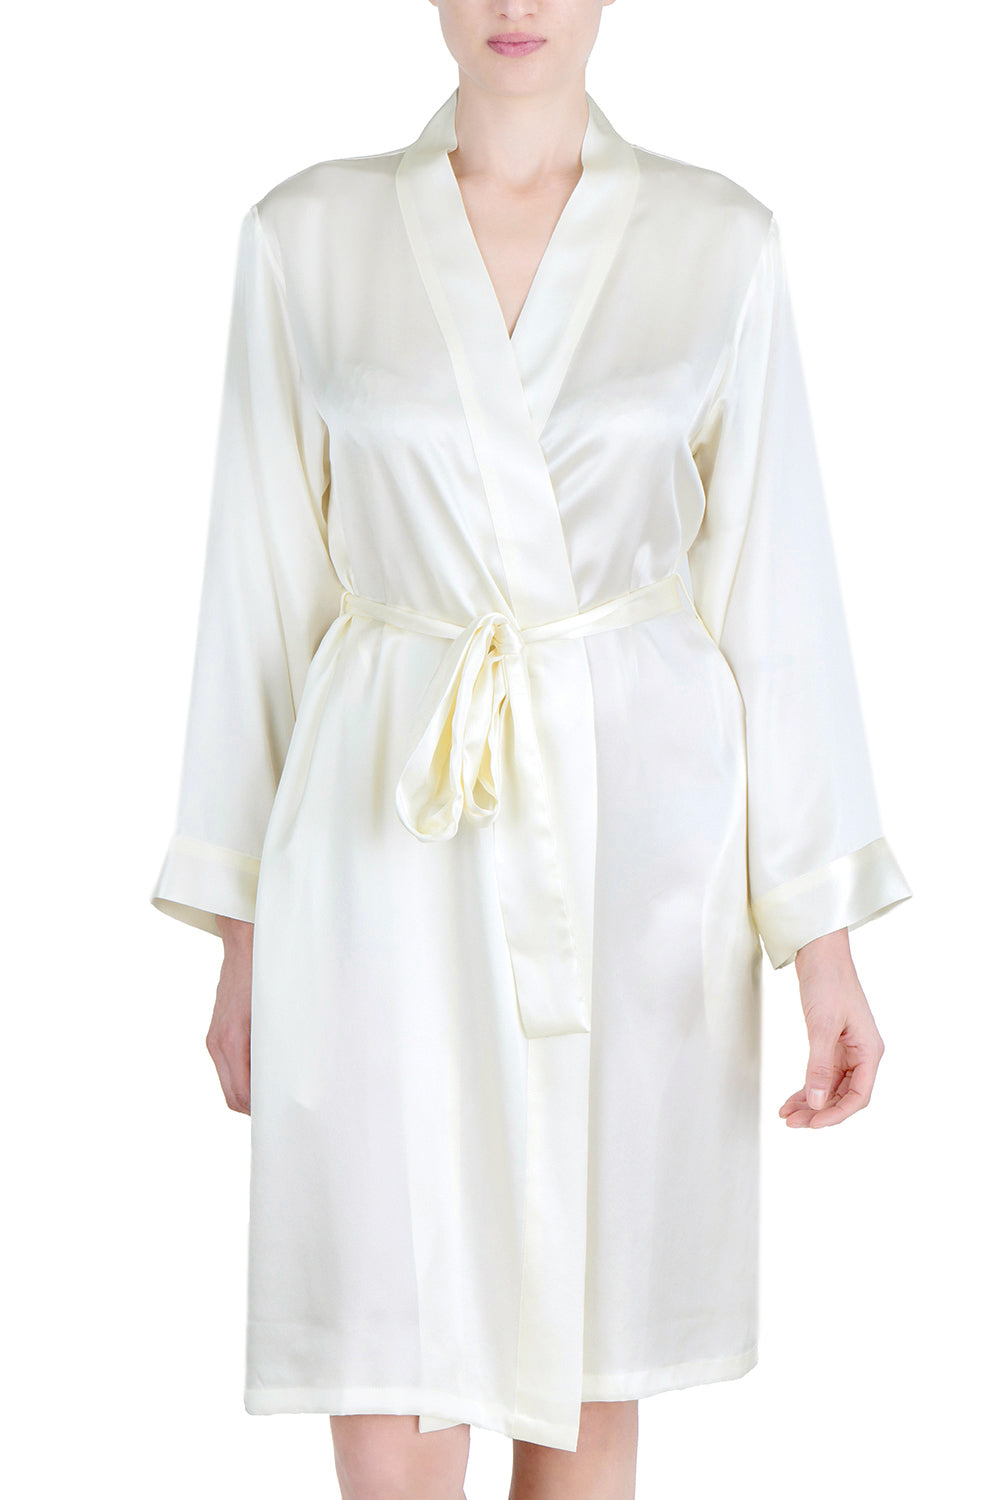 Women's Luxury Silk Sleepwear 100% Silk Robe Kimono -OSCAR ROSSA